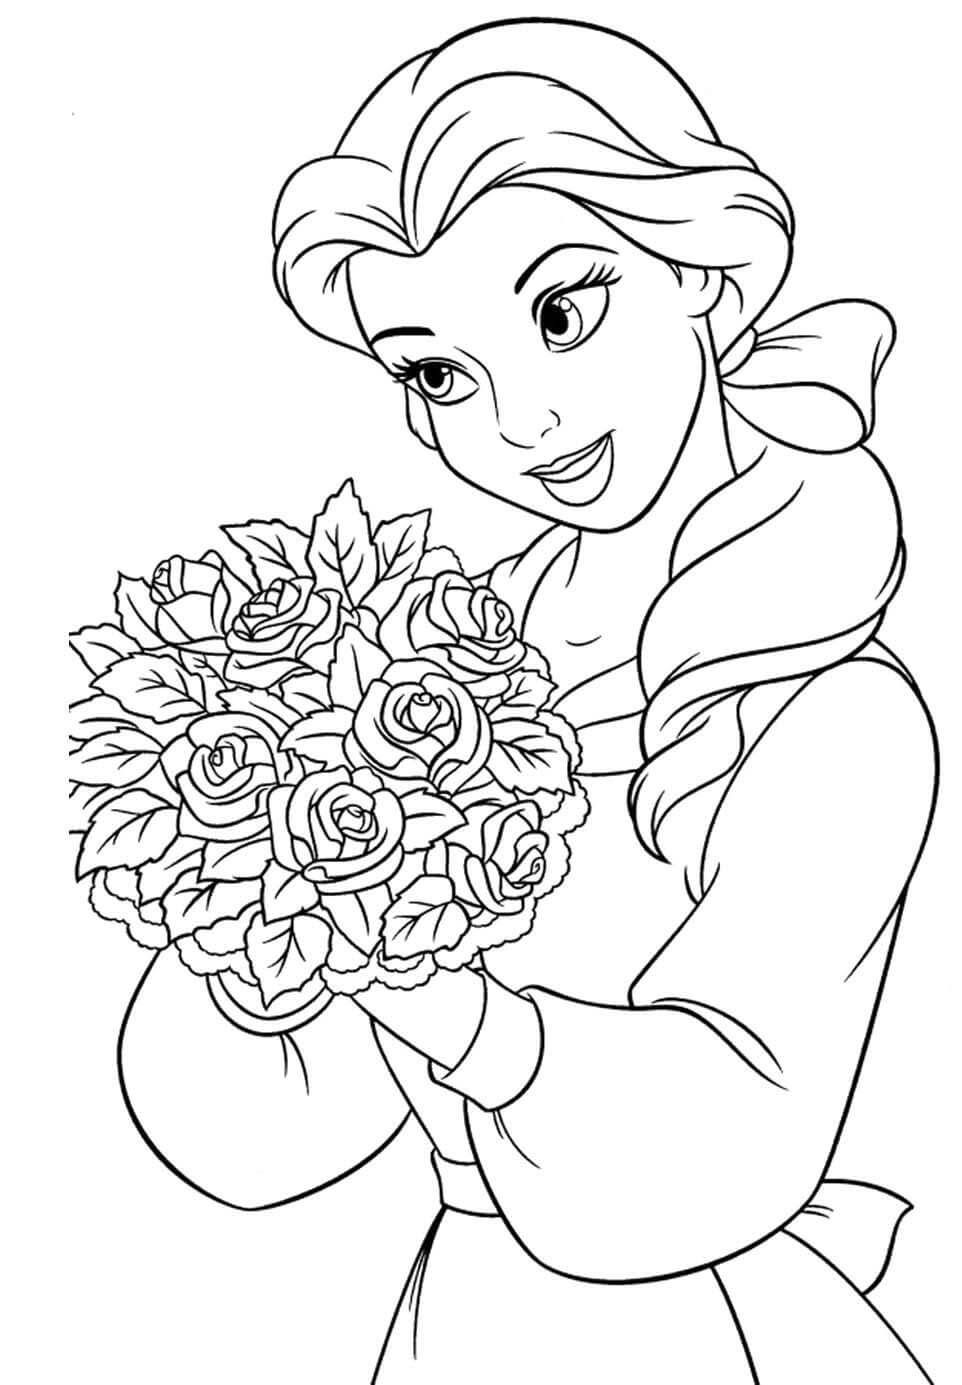 Belles Rose Bouquet Coloring Page Disney Princess Coloring Pages